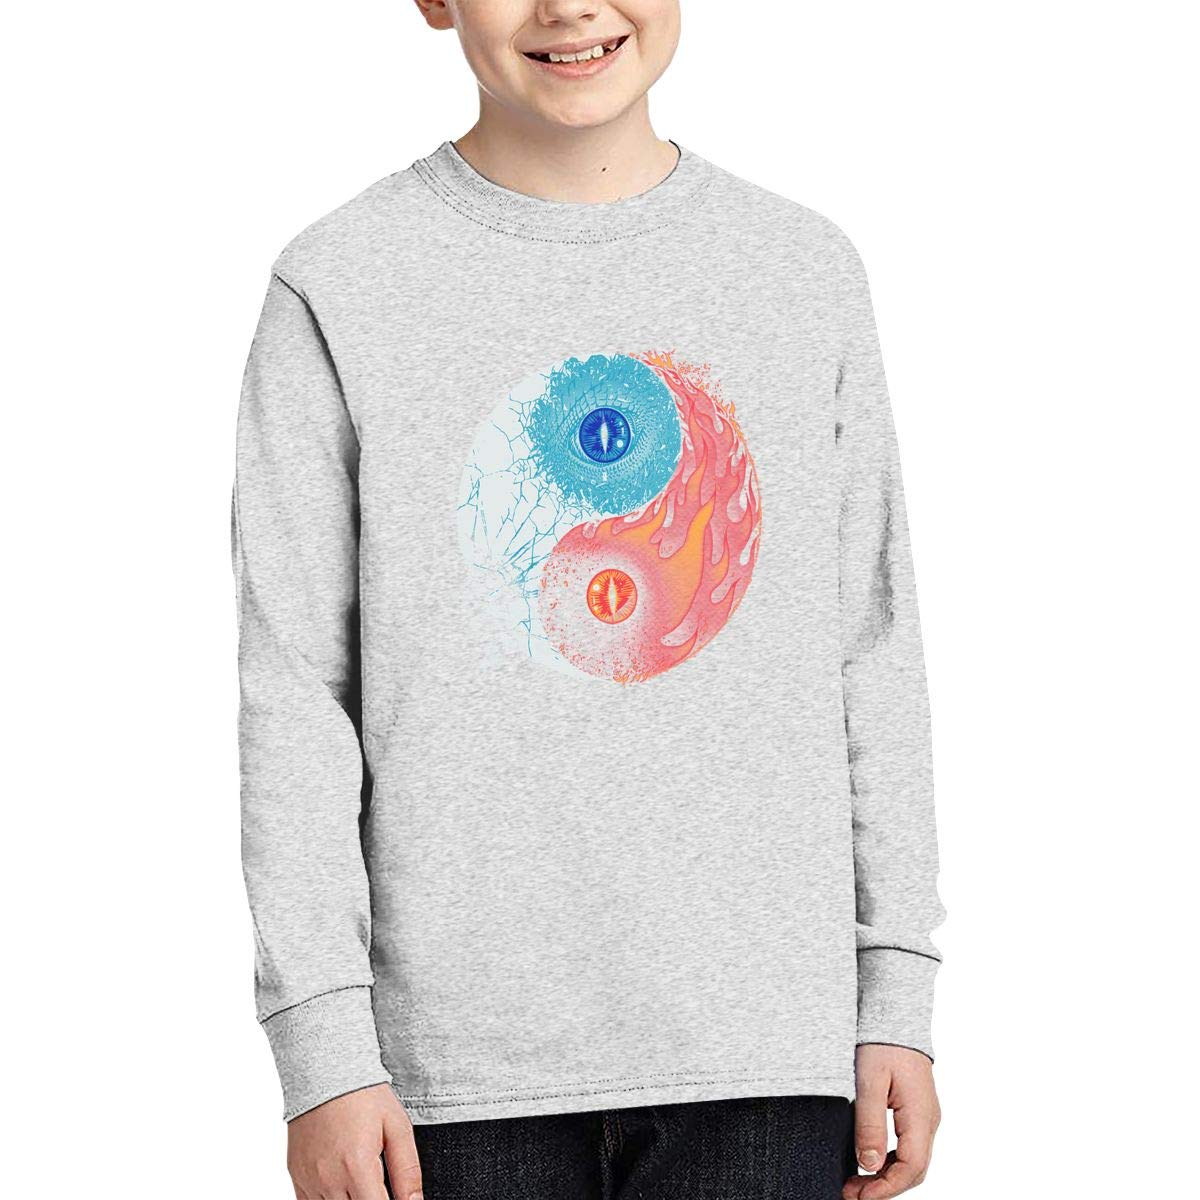 Ice and Fire Boys Long Sleeve T-Shirt,Fashion Youth Tops